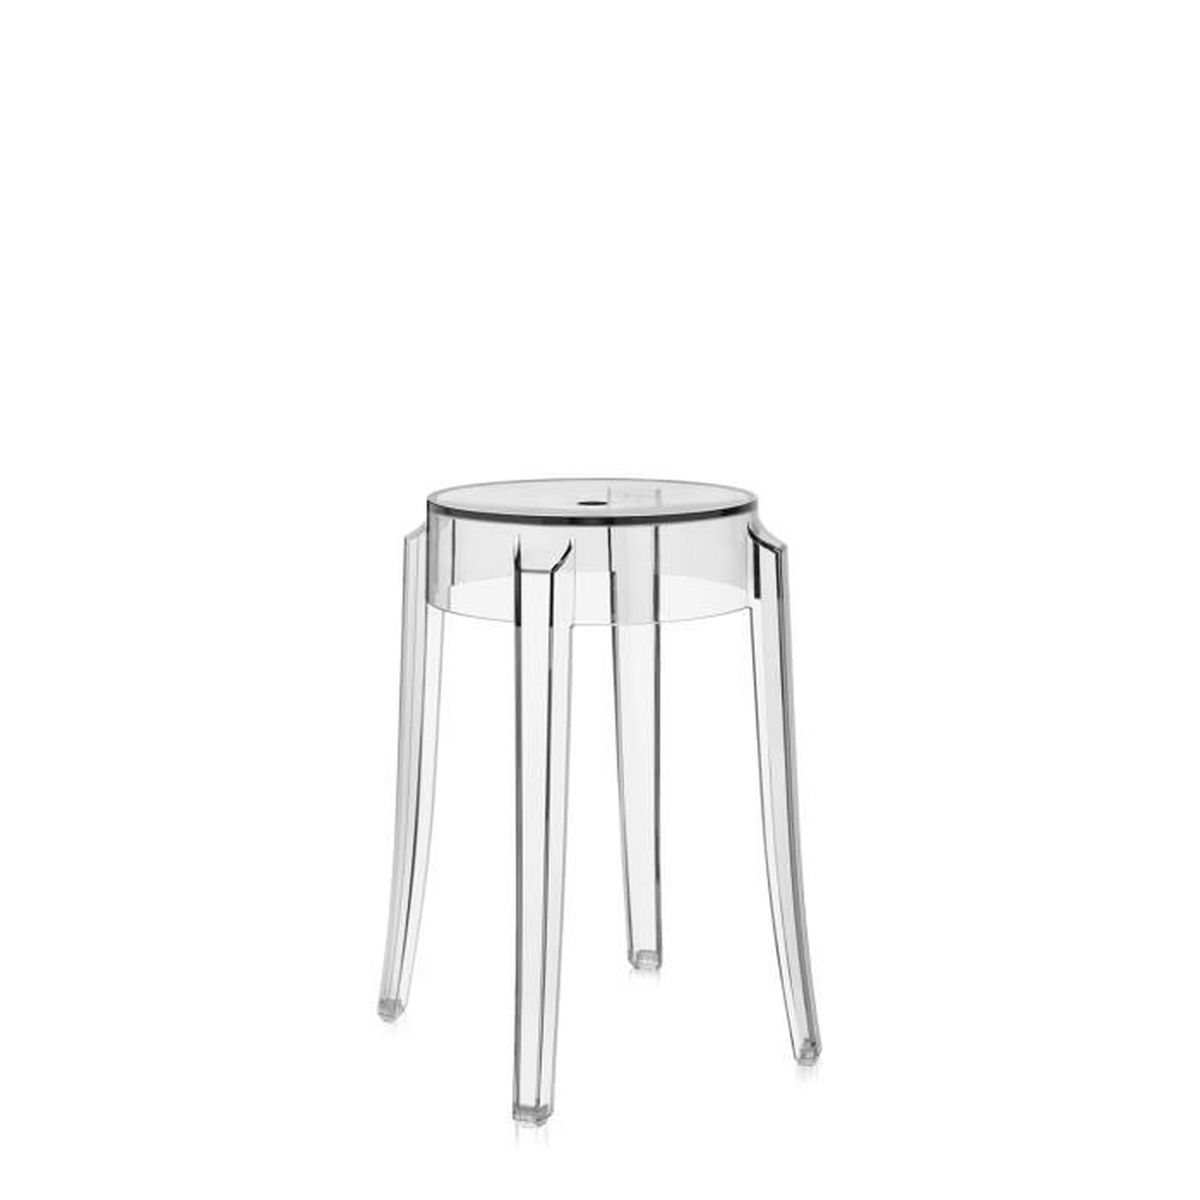 Kartell tabouret charles ghost h46 cm cristal achat vente tabouret cd - Fauteuil kartell occasion ...